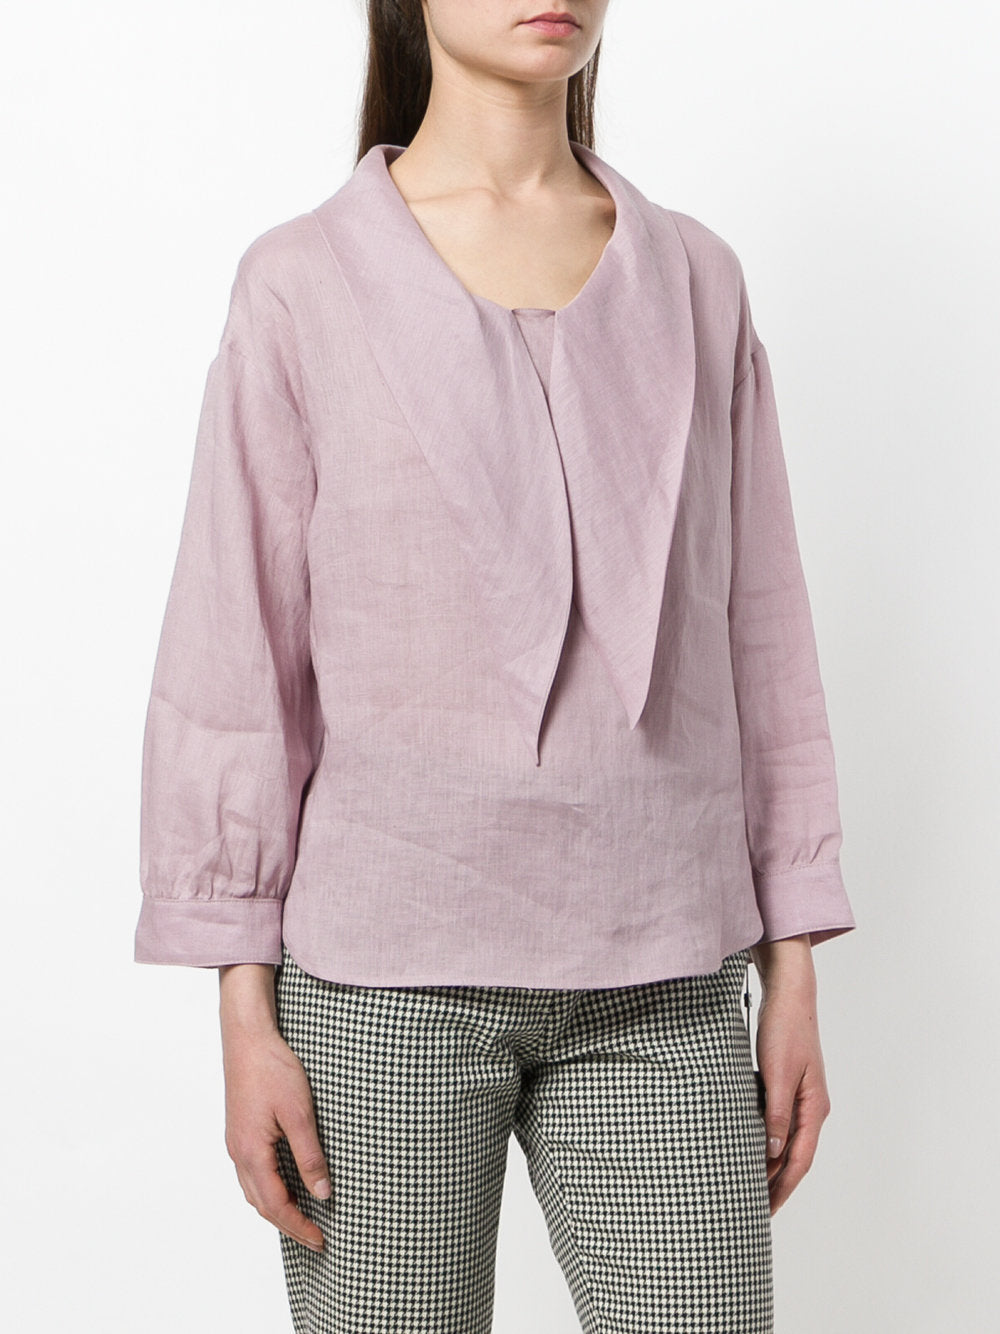 Pointed-collar blouse